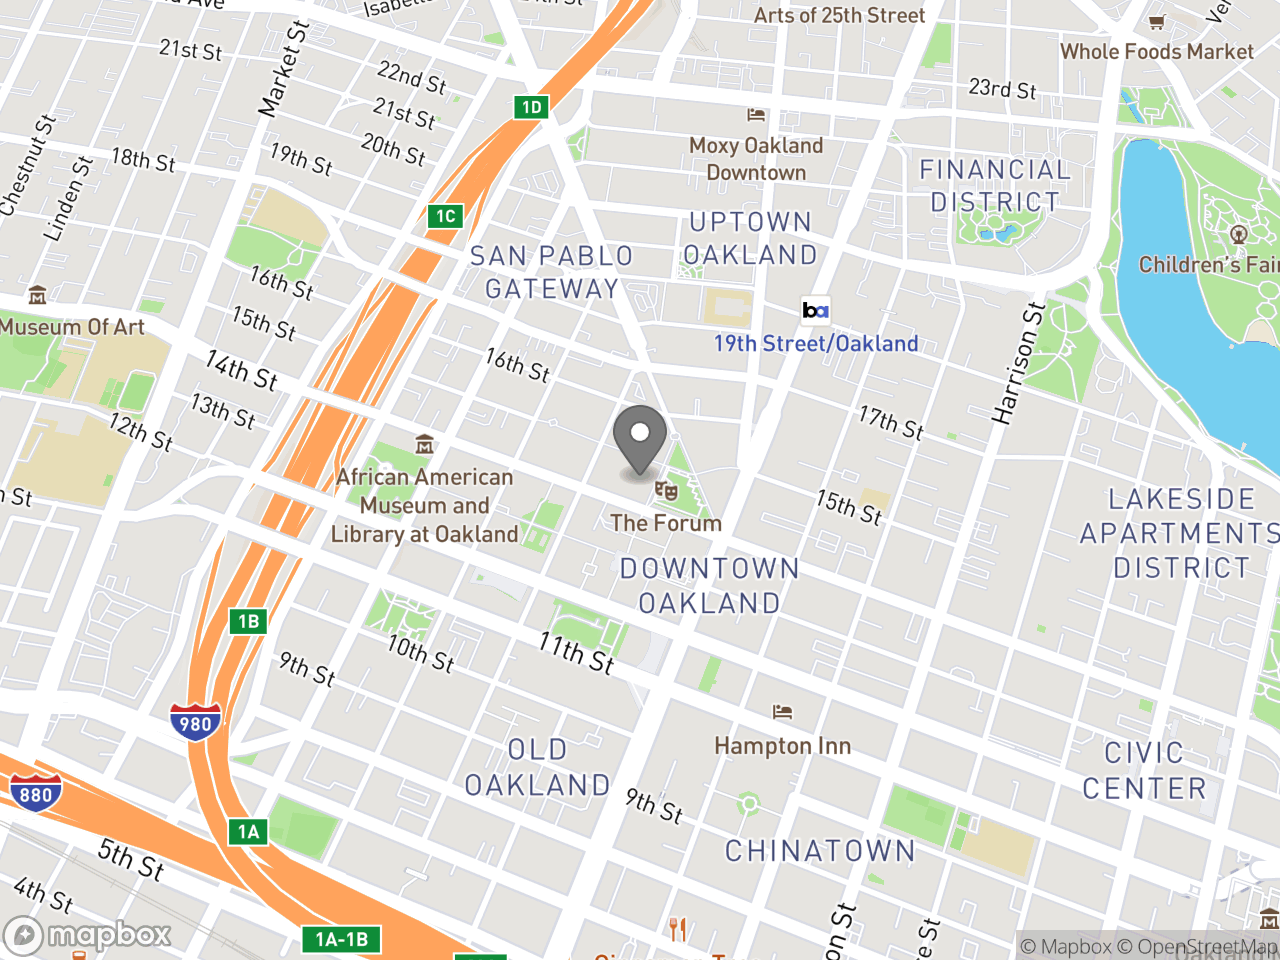 Map image for Bicyclist and Pedestrian Advisory Commission (BPAC) Meeting, July 19, 2018, located at 1 Frank H Ogawa Plaza in Oakland, CA 94612